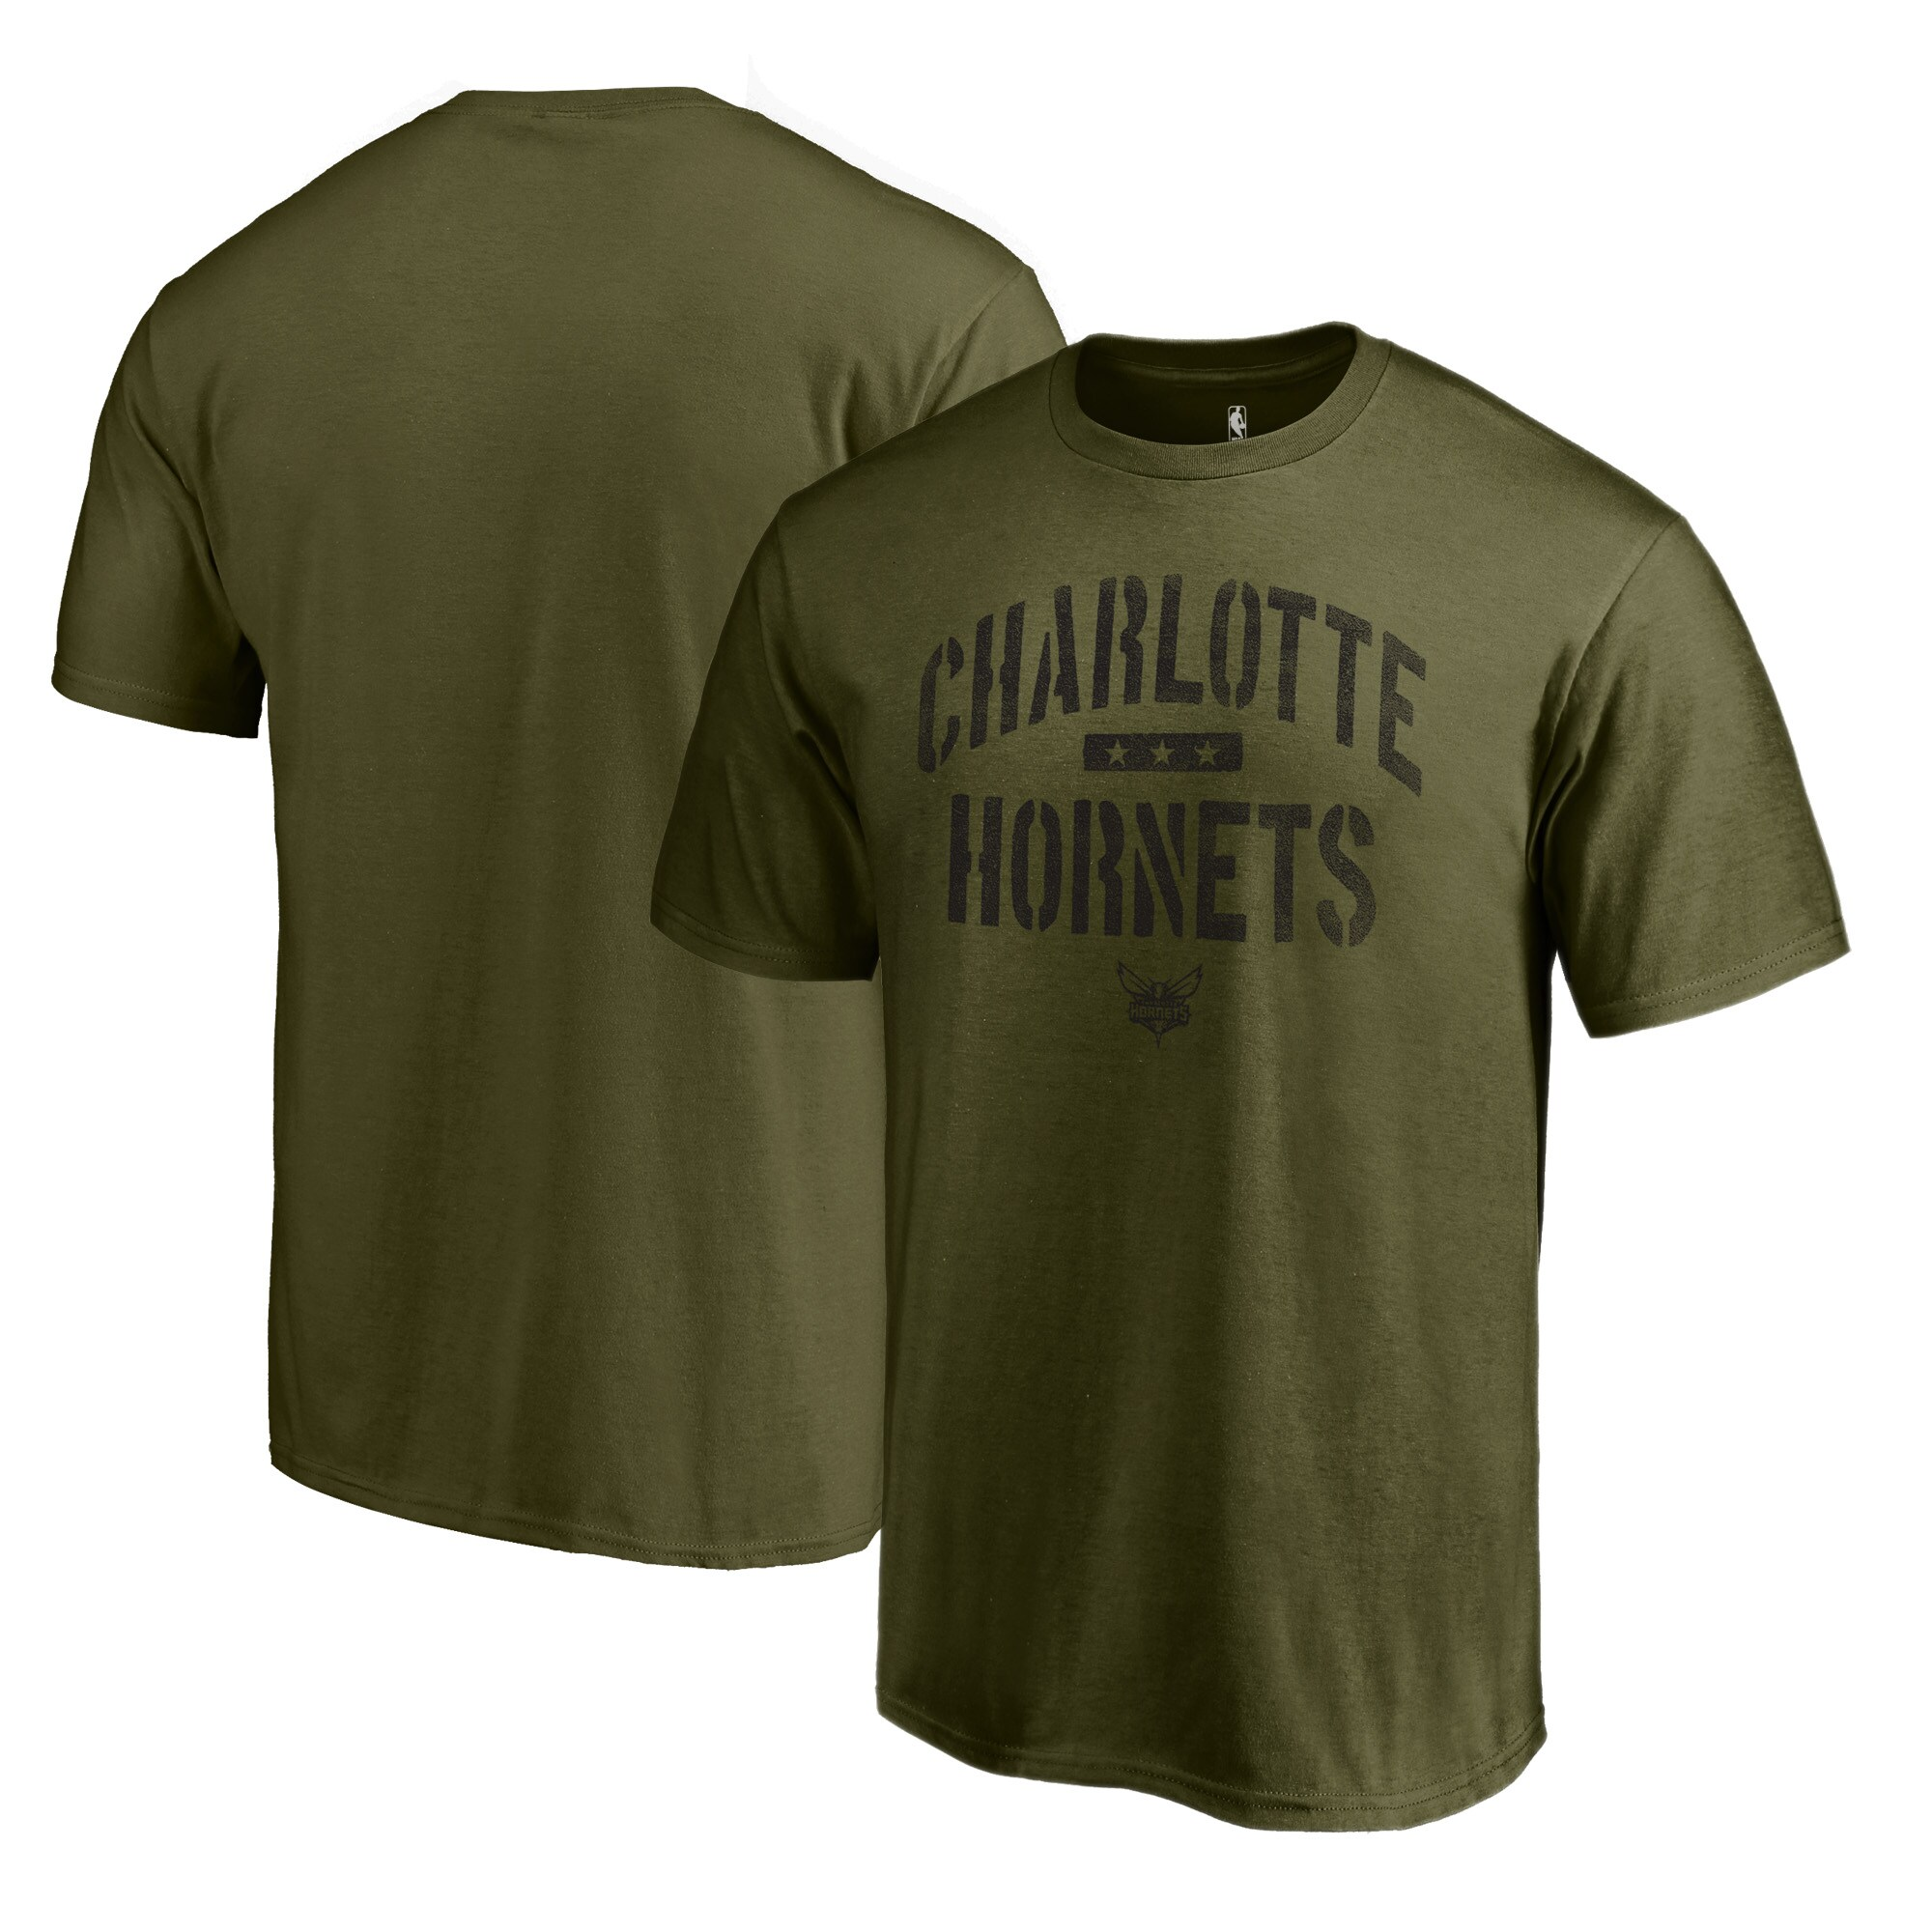 Charlotte Hornets Fanatics Branded Camo Collection Jungle T-Shirt - Green